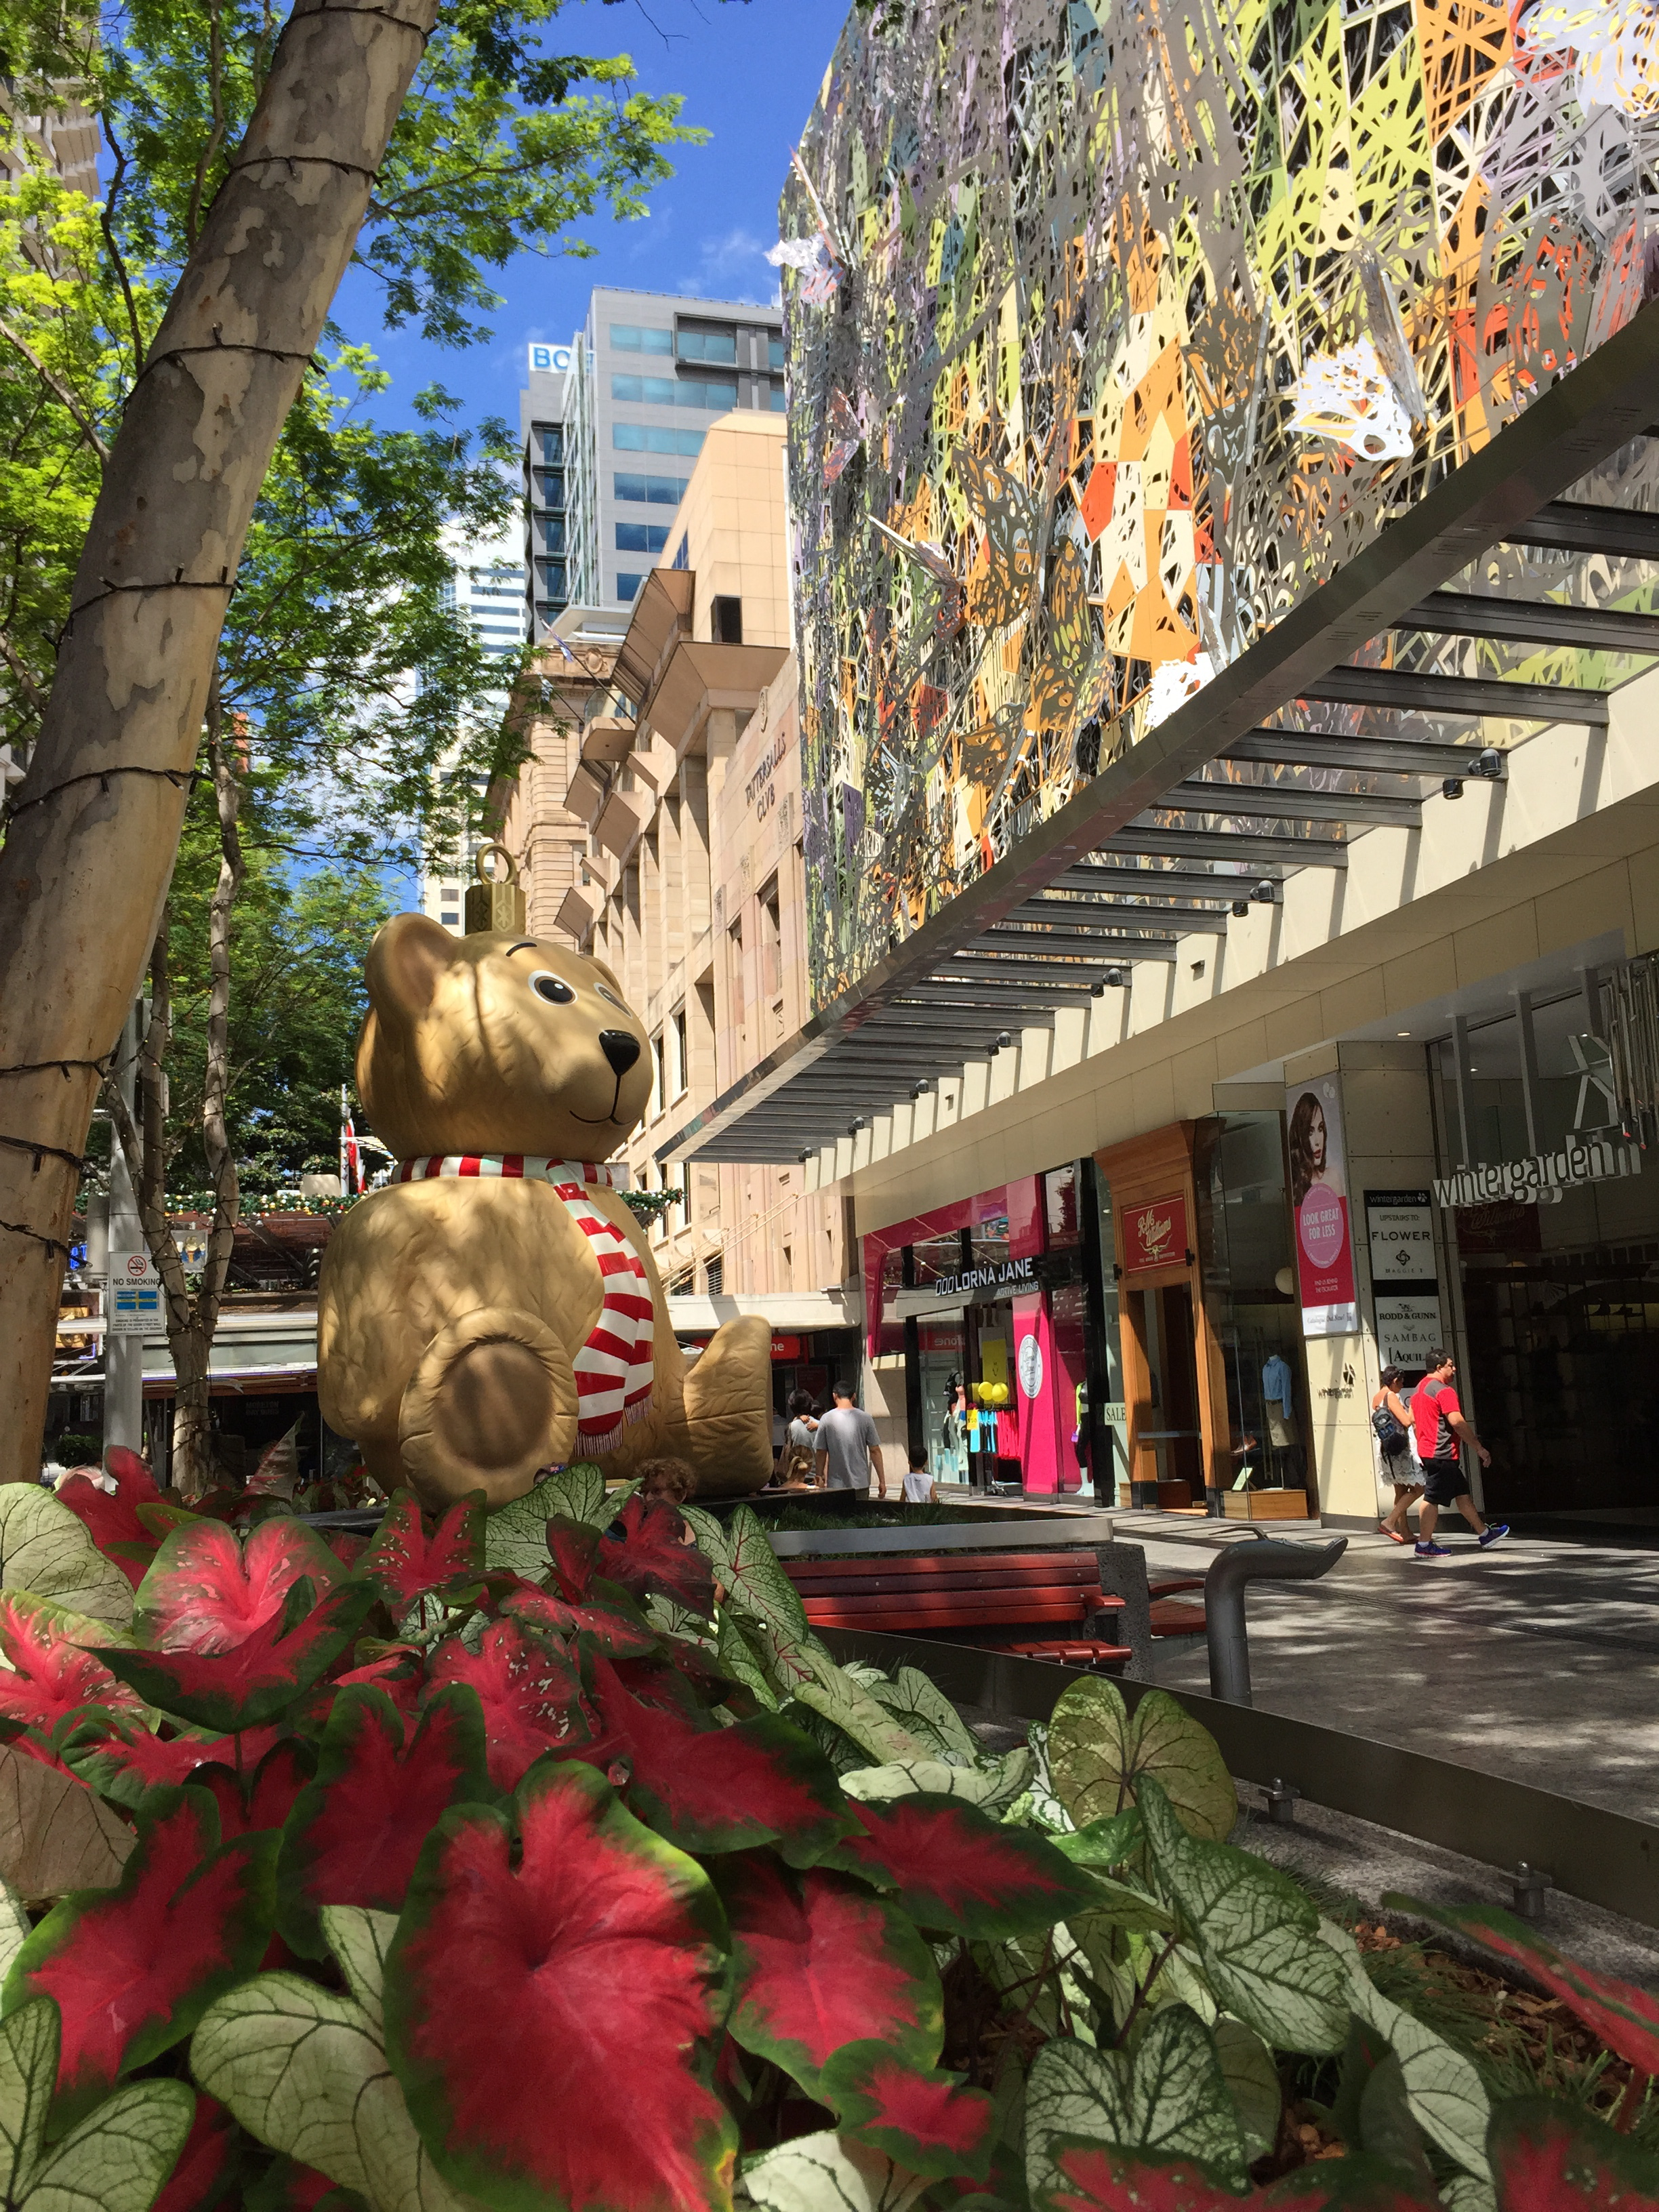 filechristmas decorations in queen street mall brisbane dec 2014 01jpg - Queen Christmas Decorations